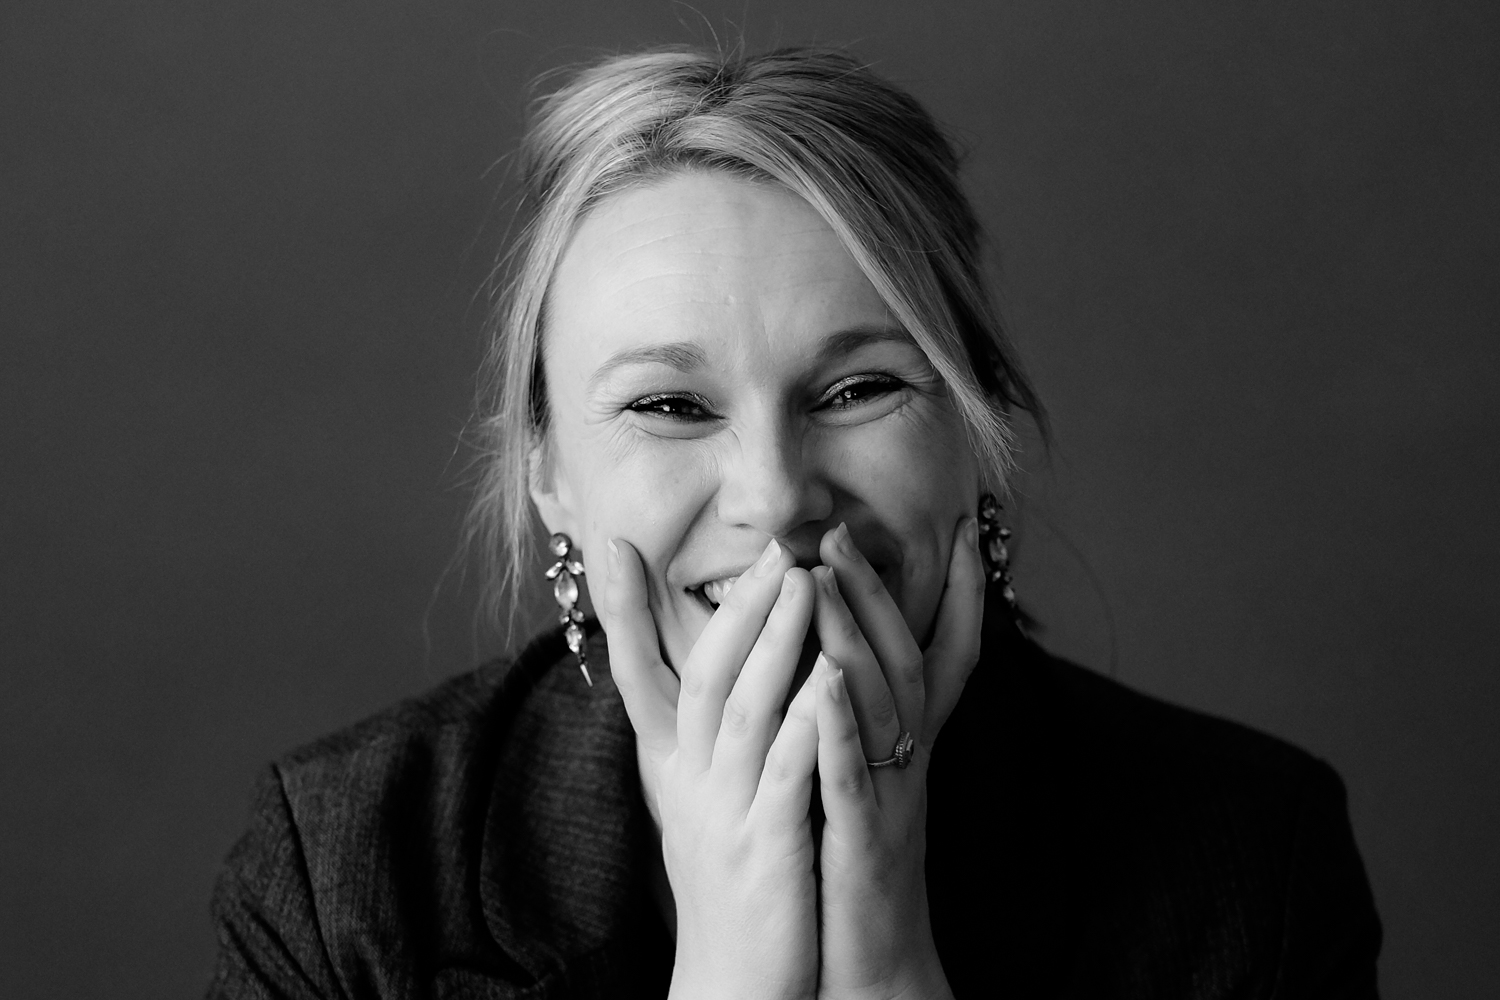 Female headshot laughing - 4 Tips for Helping People Feel Comfortable During Their Portrait Session